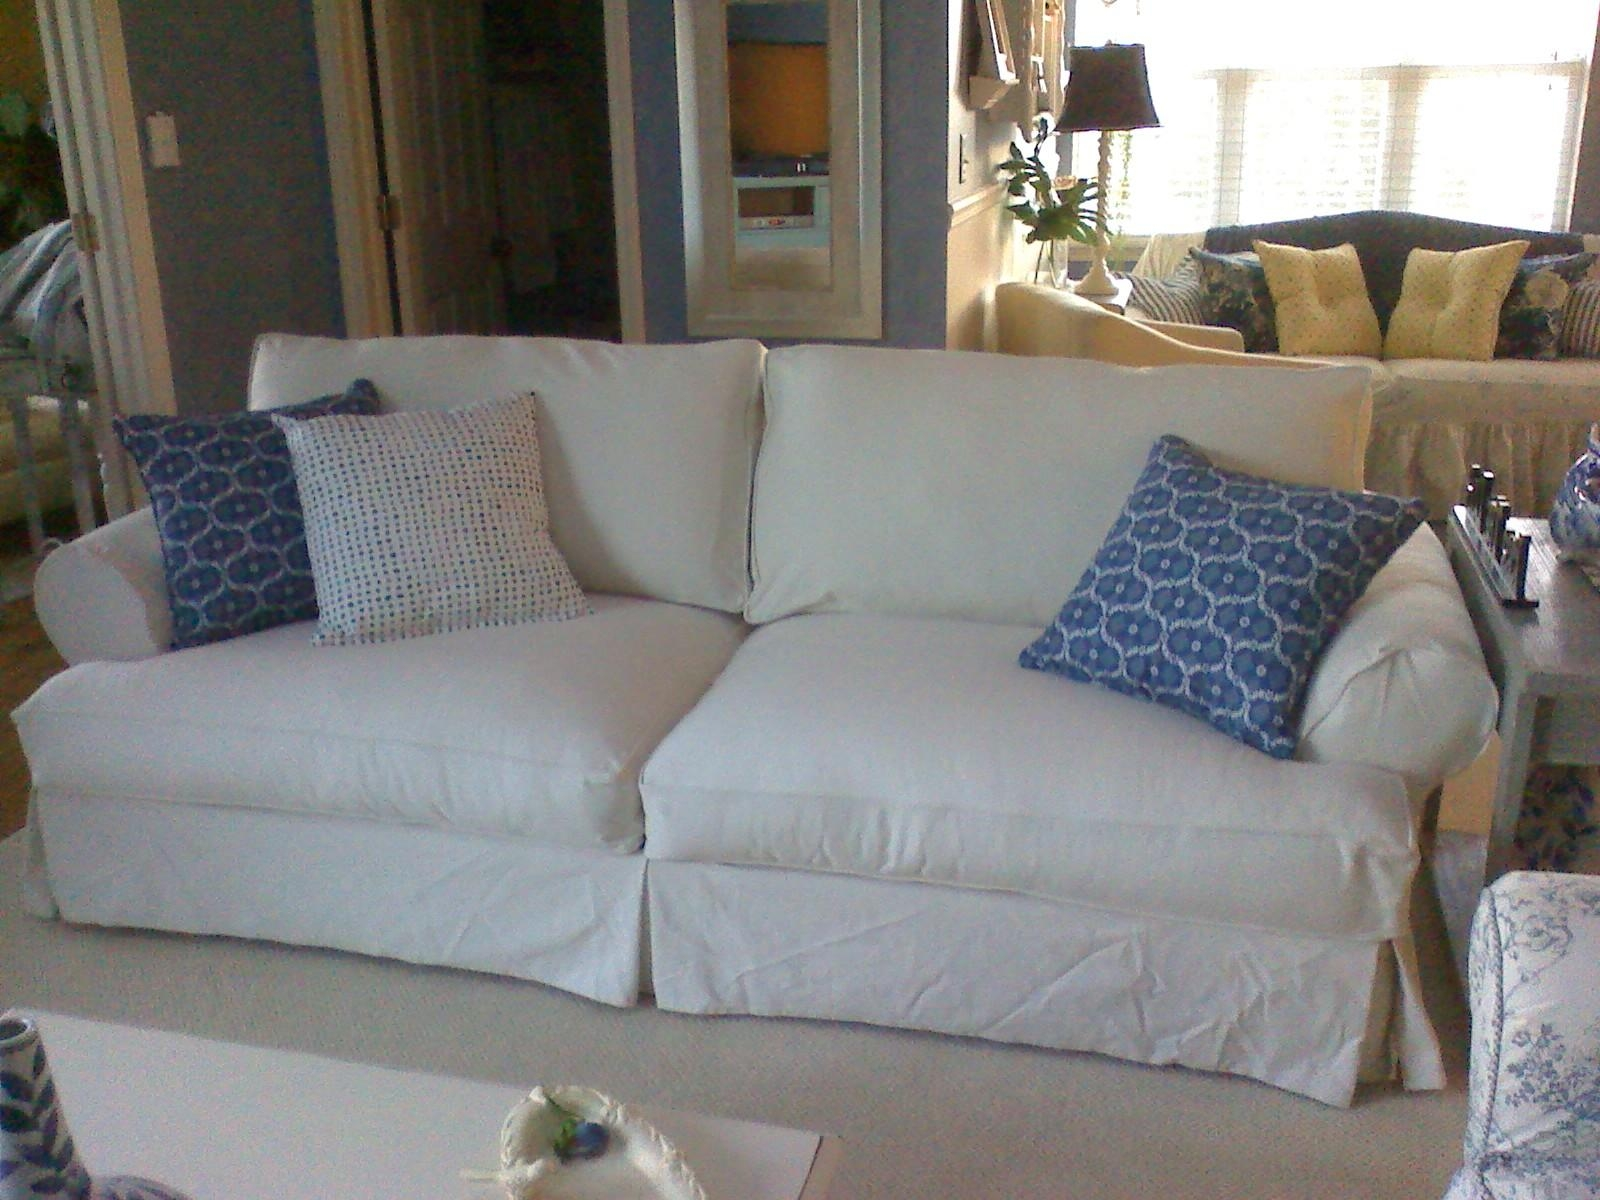 Replacement Slipcover Outlet  Replacement Slipcovers For Famous For Rowe Slipcovers (Image 11 of 20)